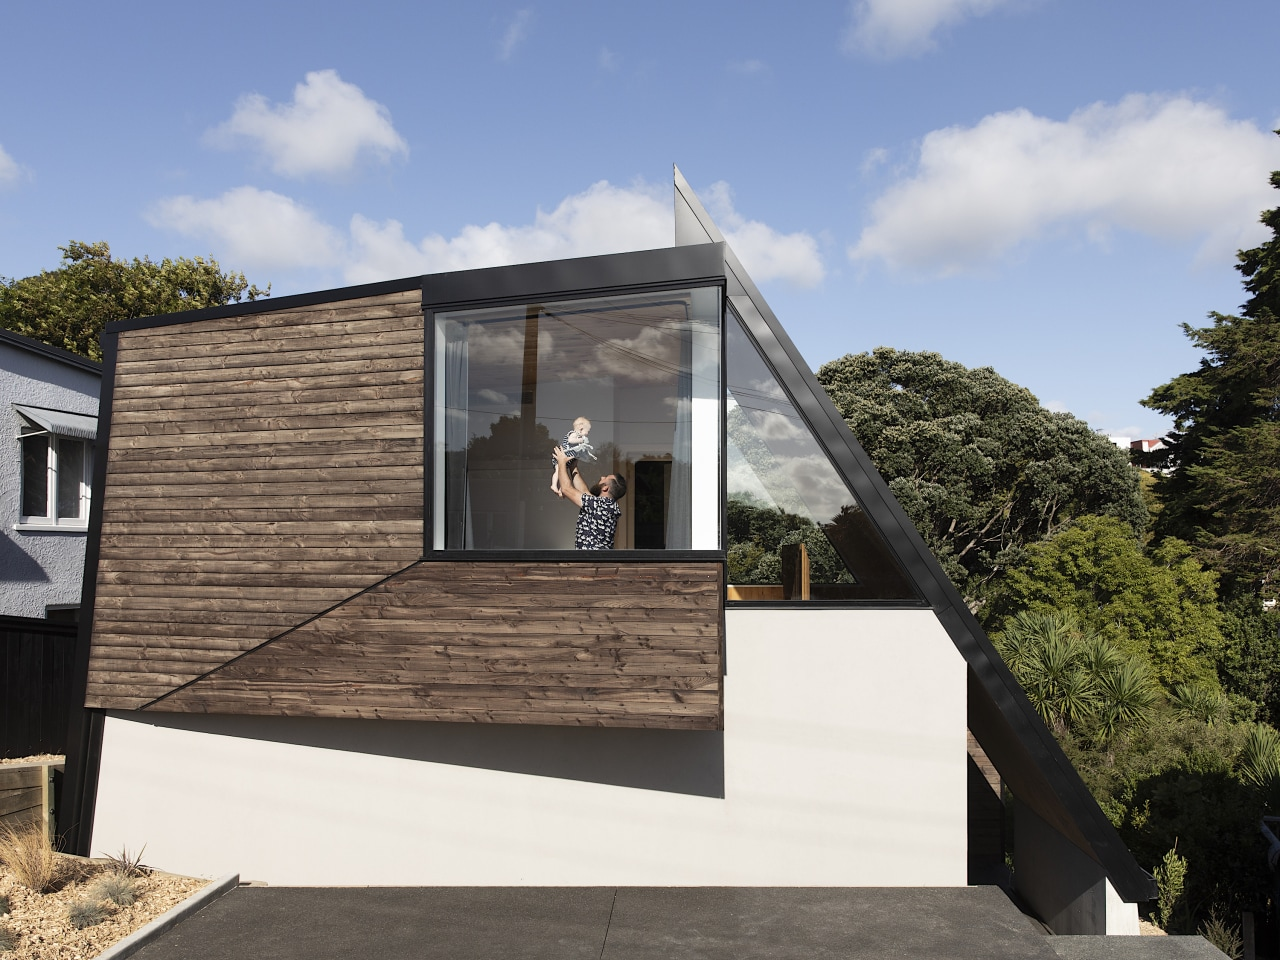 The design of TOA's Tuarangi House plays with gray